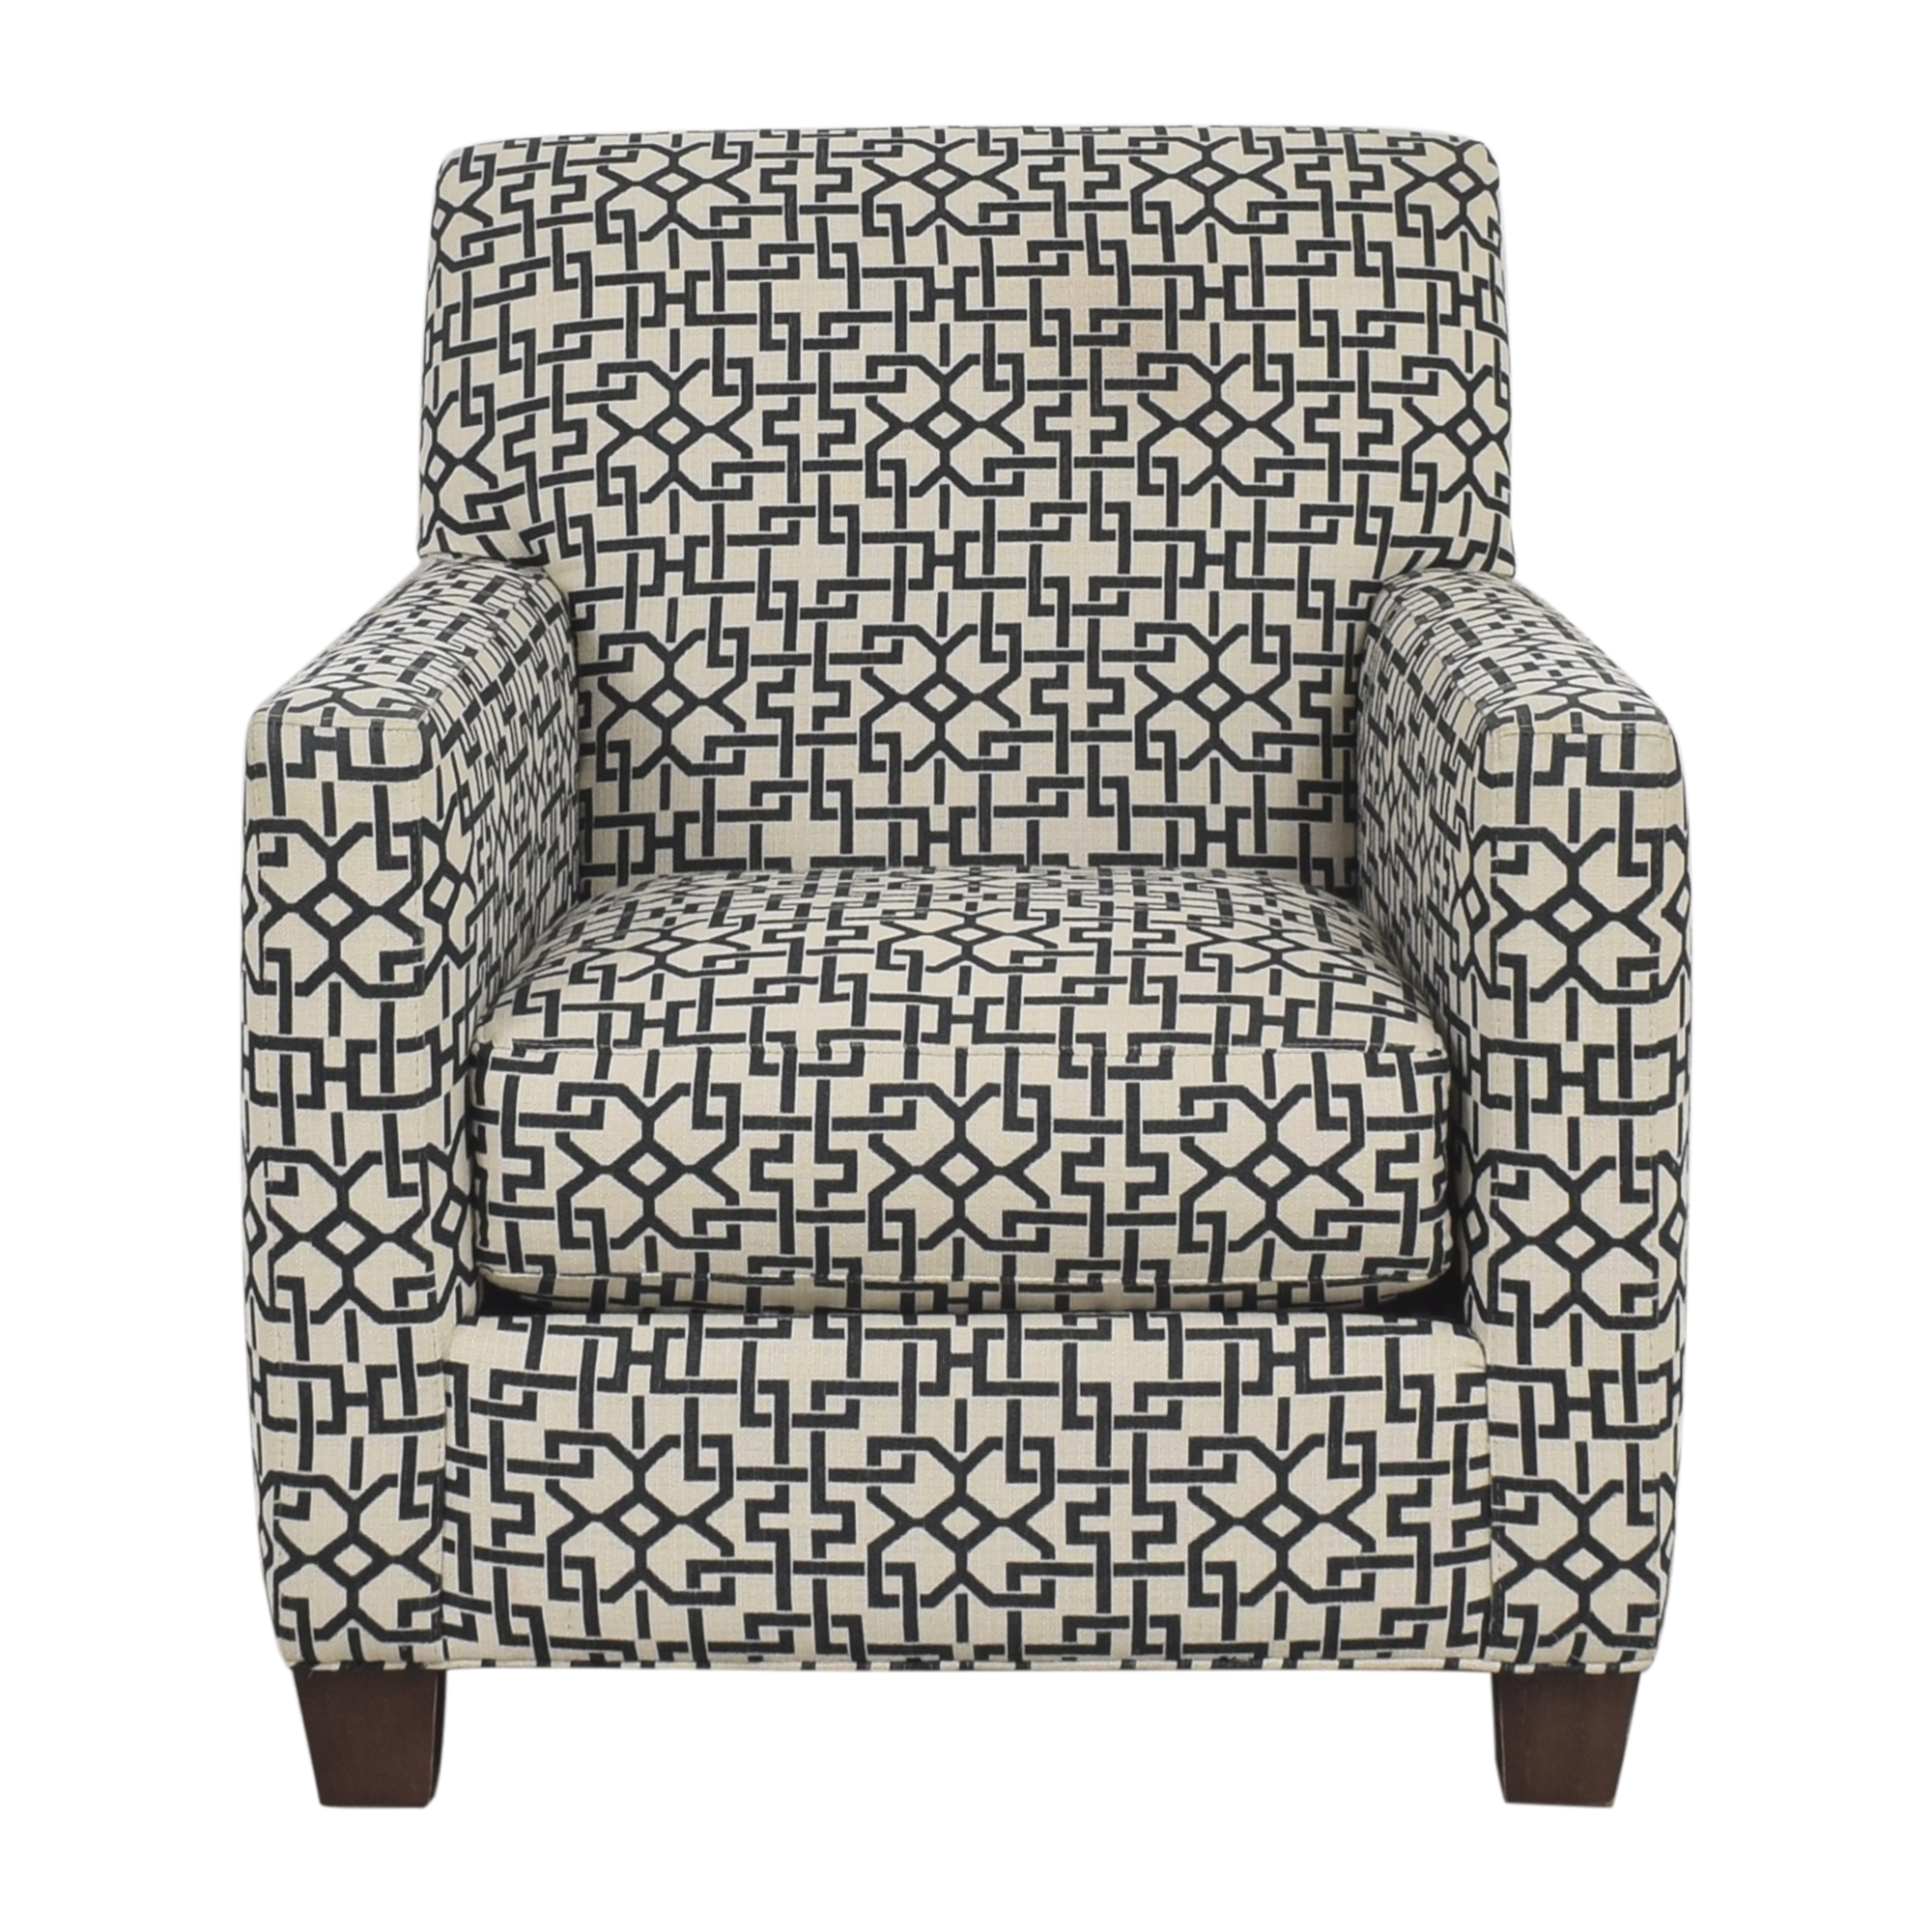 Crate & Barrel Crate & Barrel Geometric Club Chair Accent Chairs